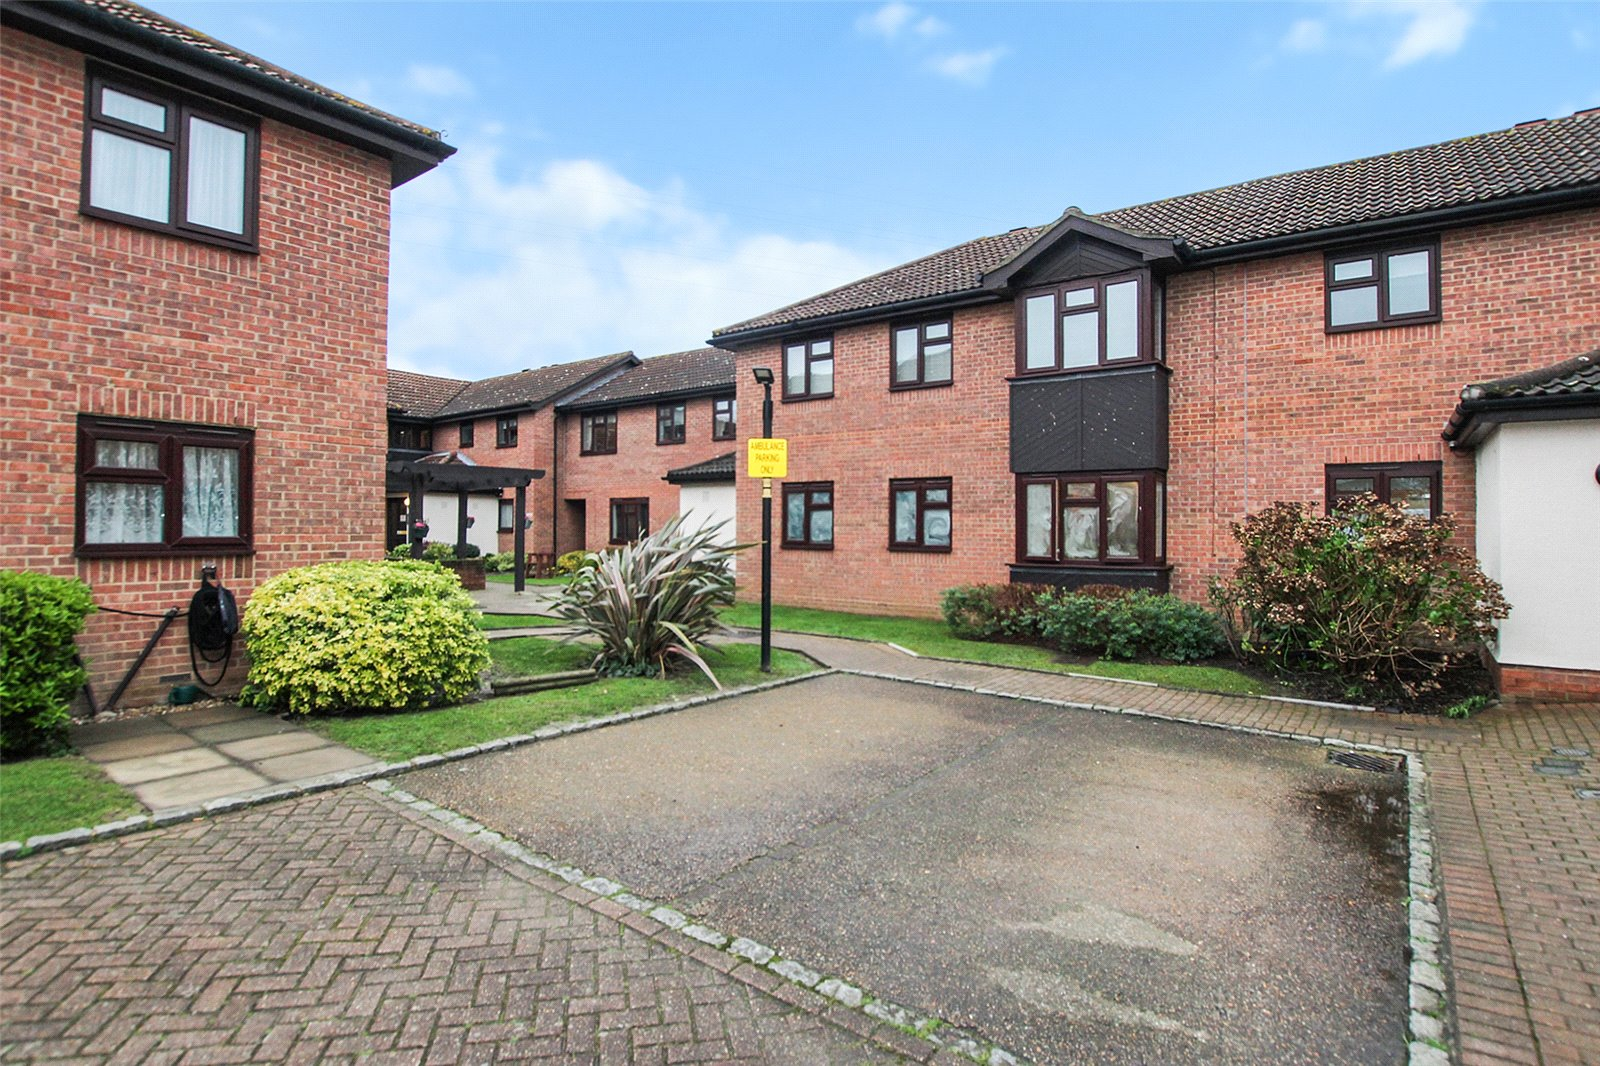 Fountain Court, Bowes Close, Blackfen, DA15